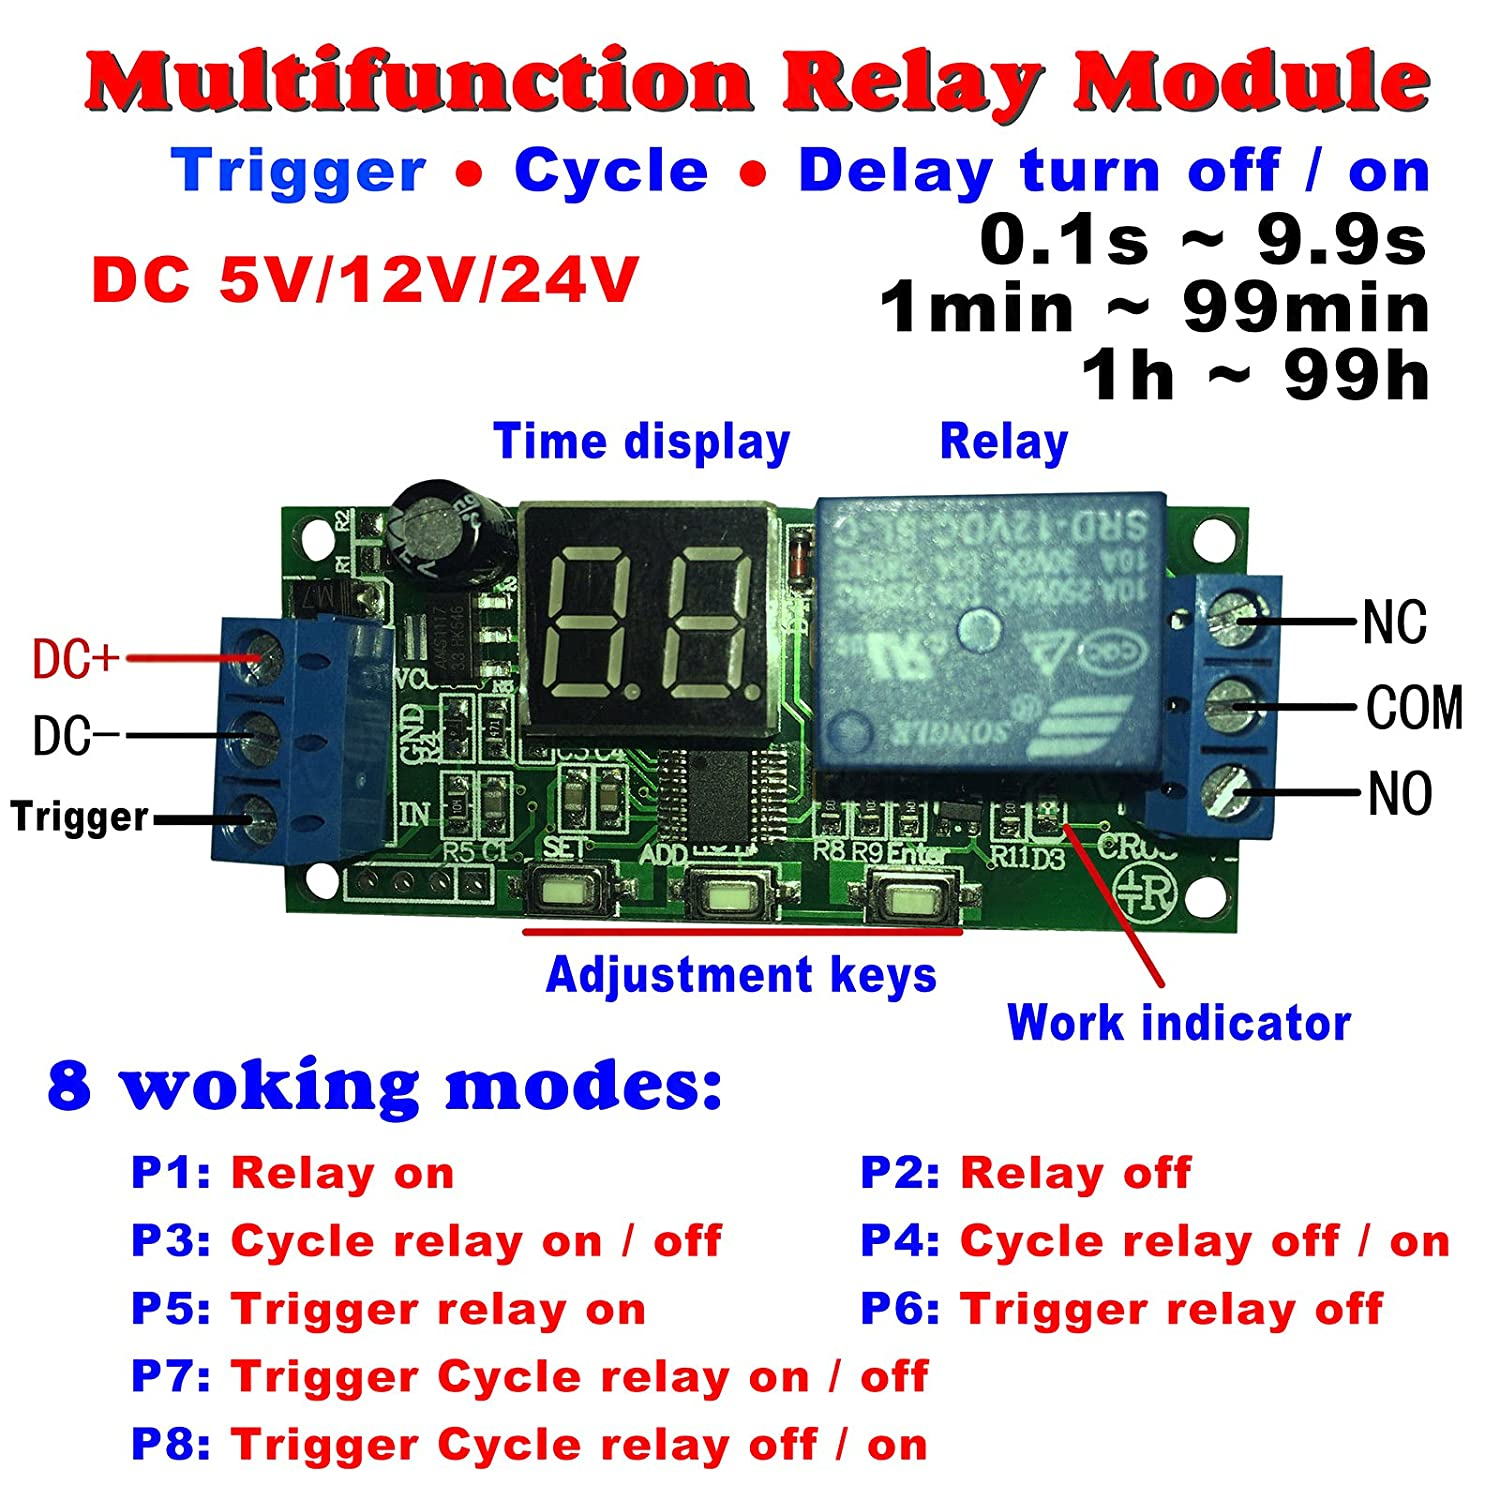 Qianson DC 5V 12V 24V Digital LED Display Infinite Cycle Delay Timer Switch  ON/OFF Relay Module (DC 12V) - - Amazon.com